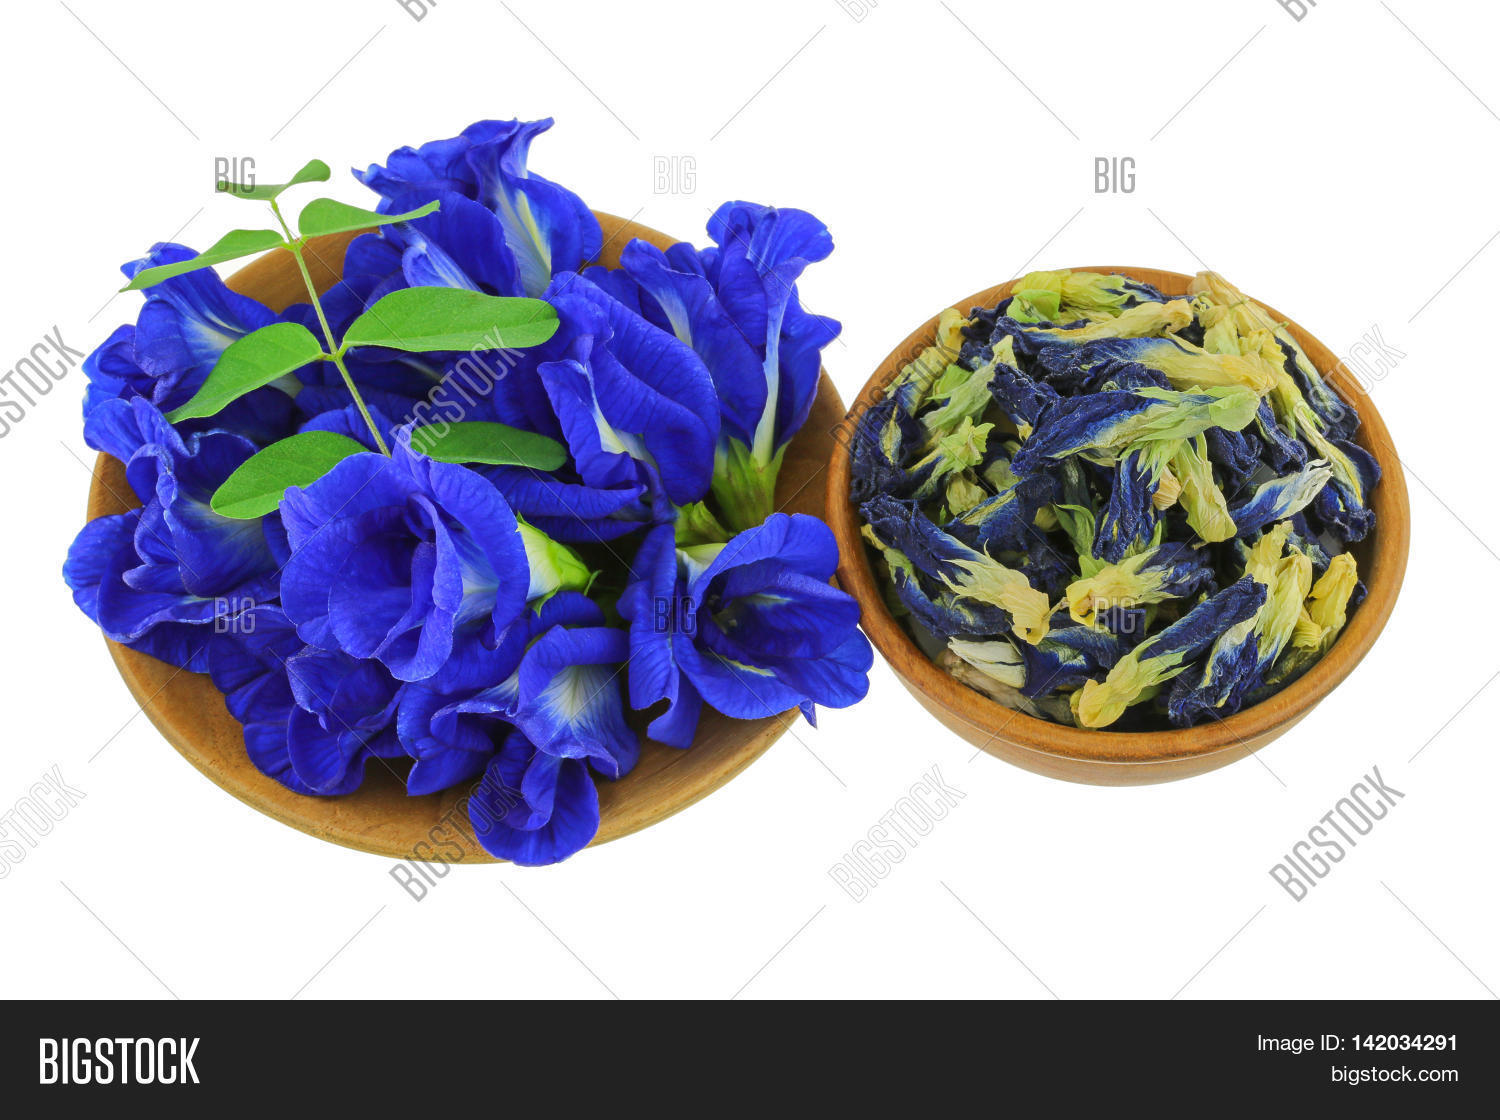 Fresh And Dried Erfly Pea Blue Flowers In Purple On Wooden Bowl Isolated